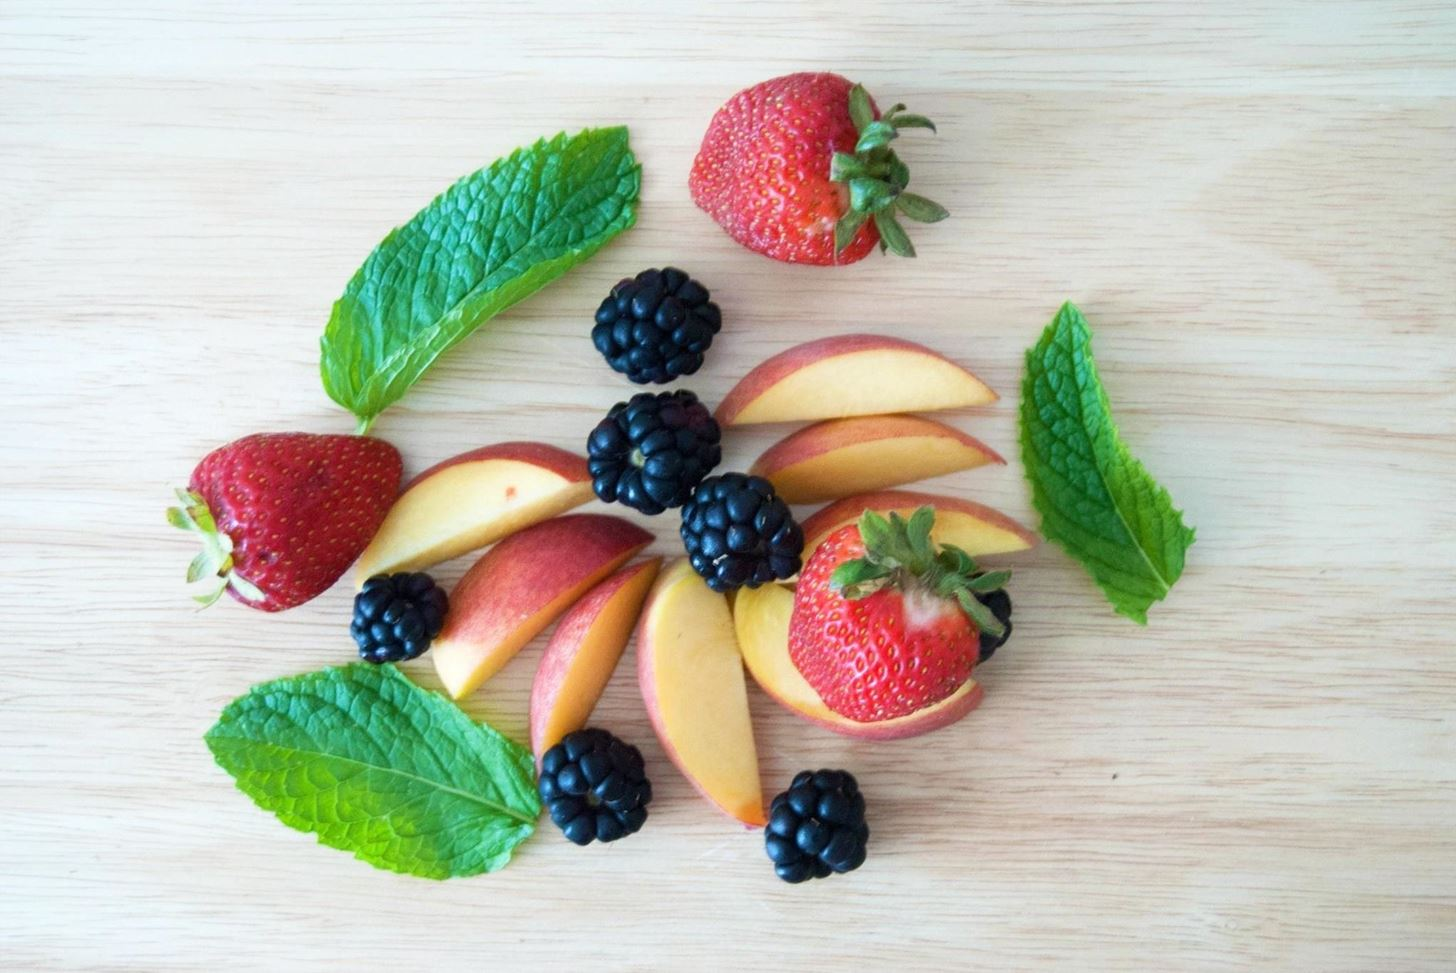 10 Ways to Take Your Summer Fruit Salad from Mediocre to Masterpiece